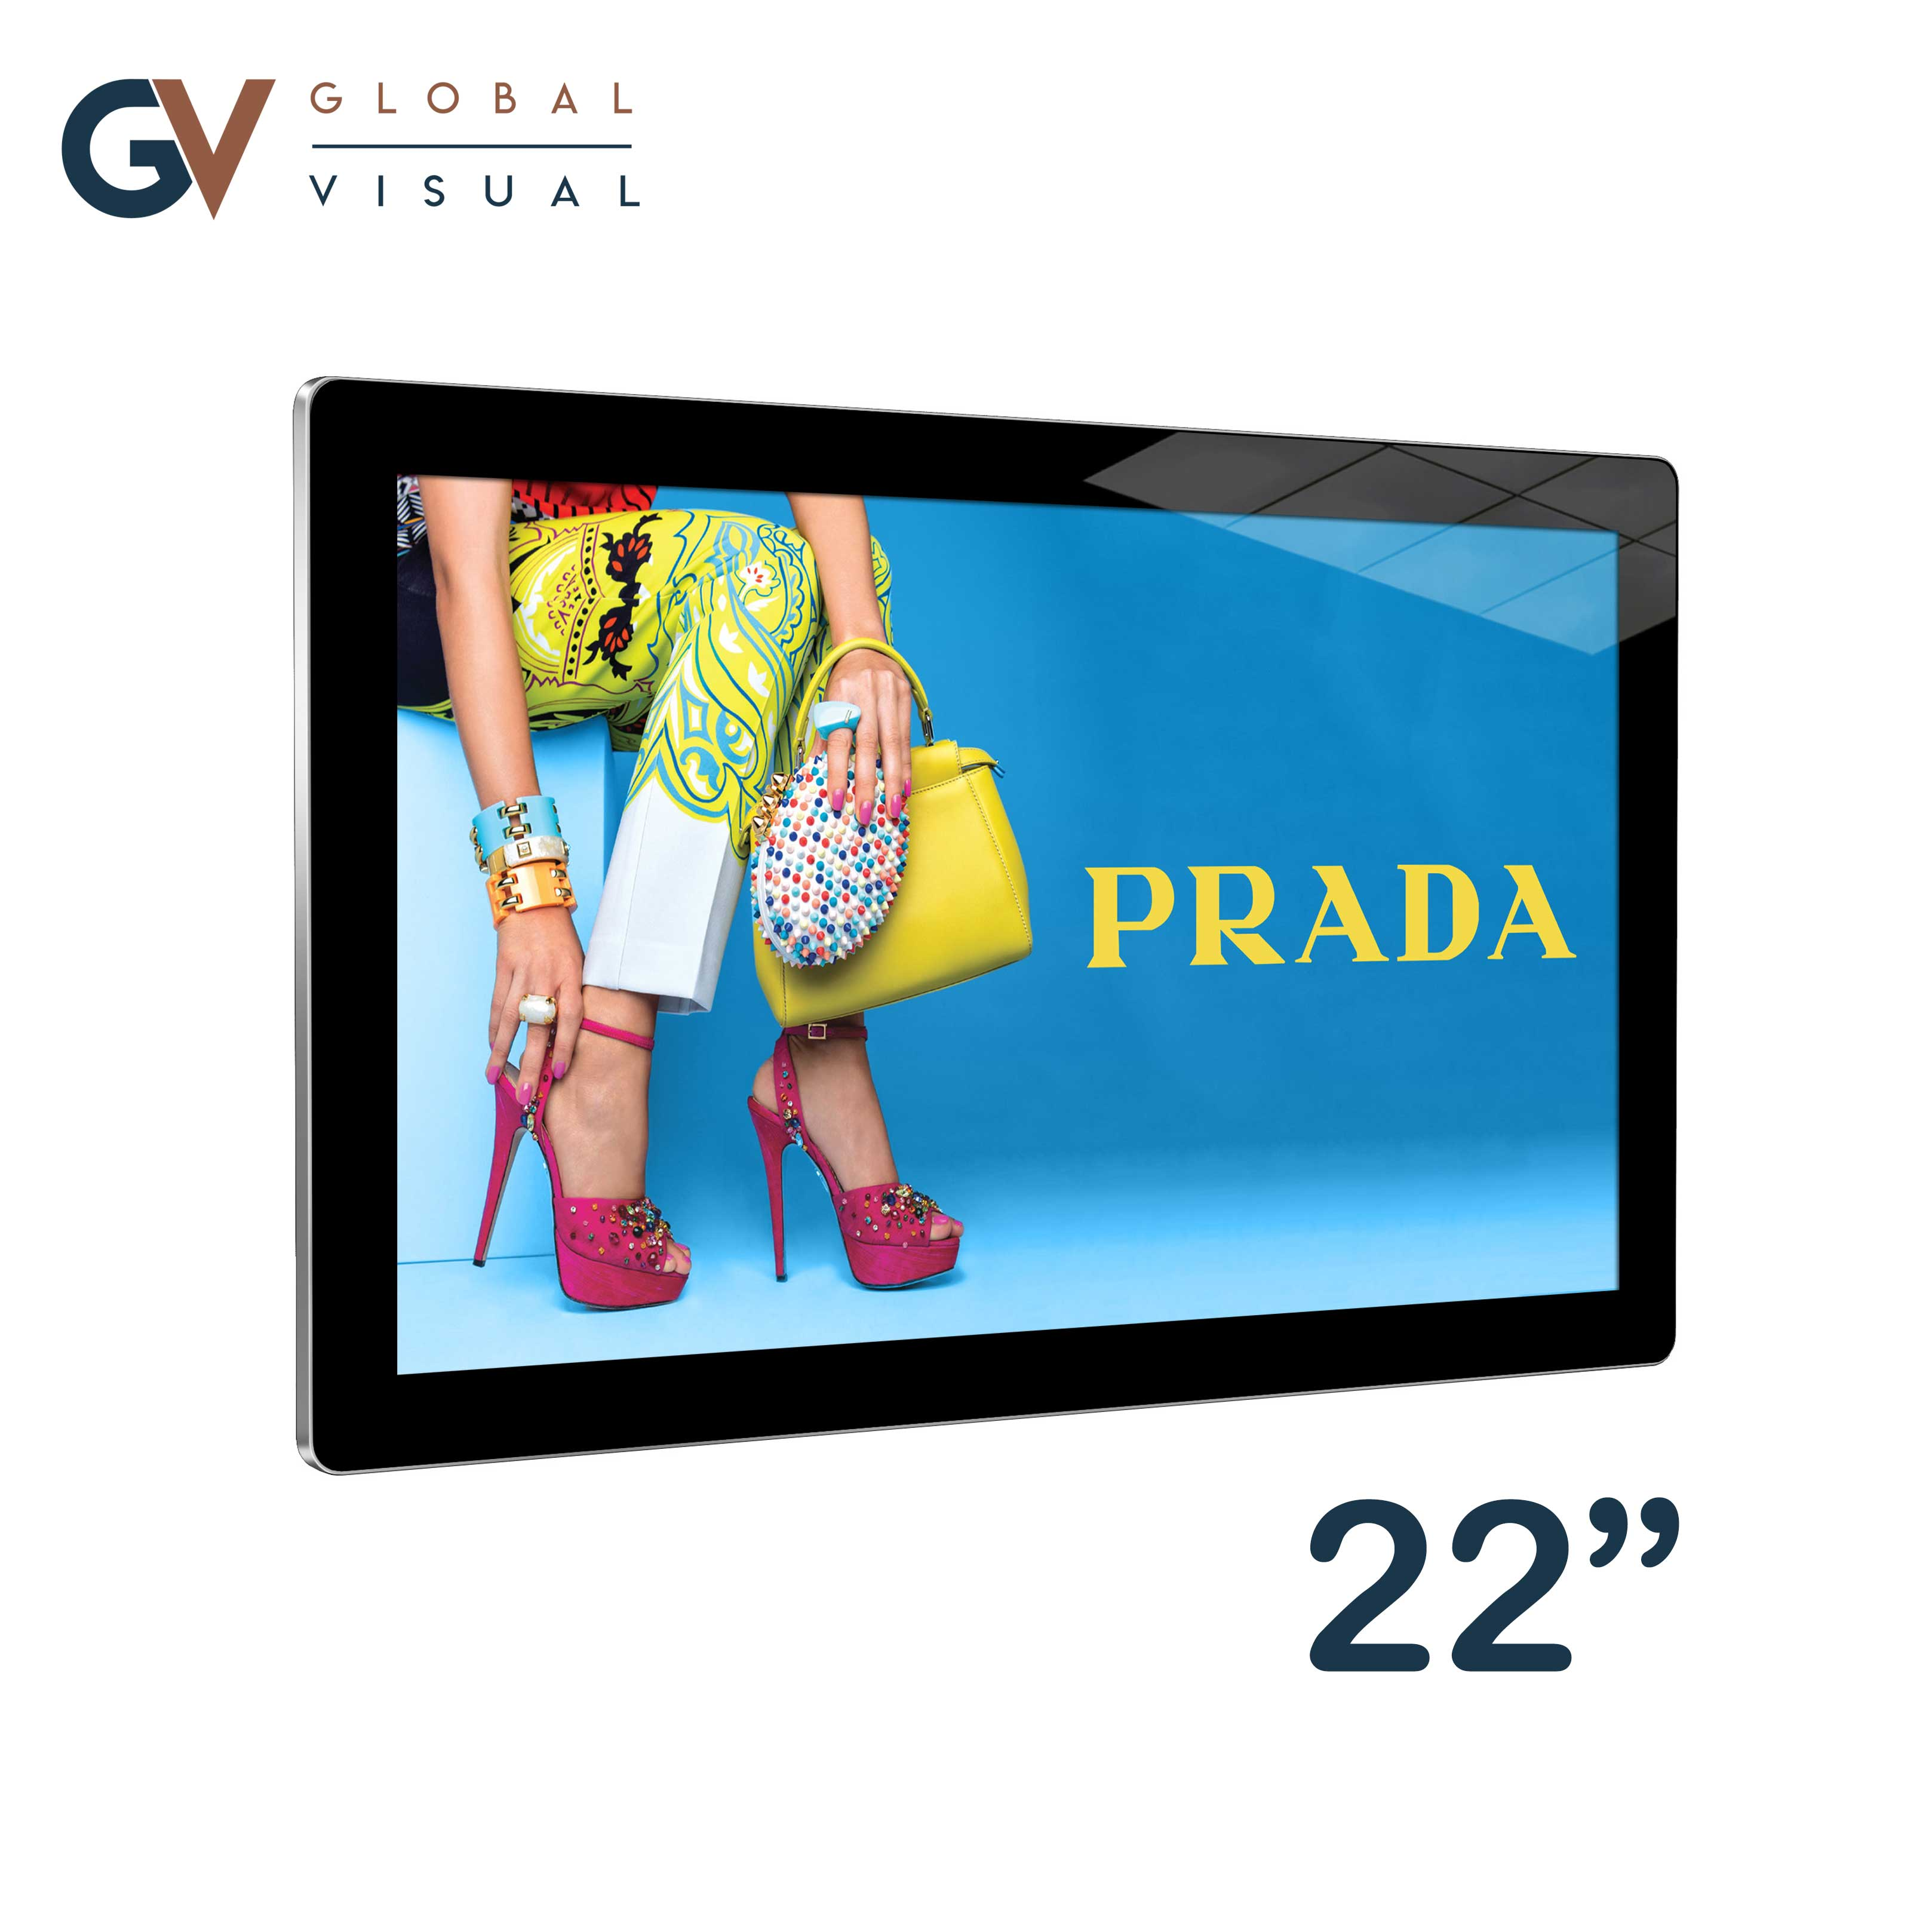 Image of a 22 inch android advertising screen